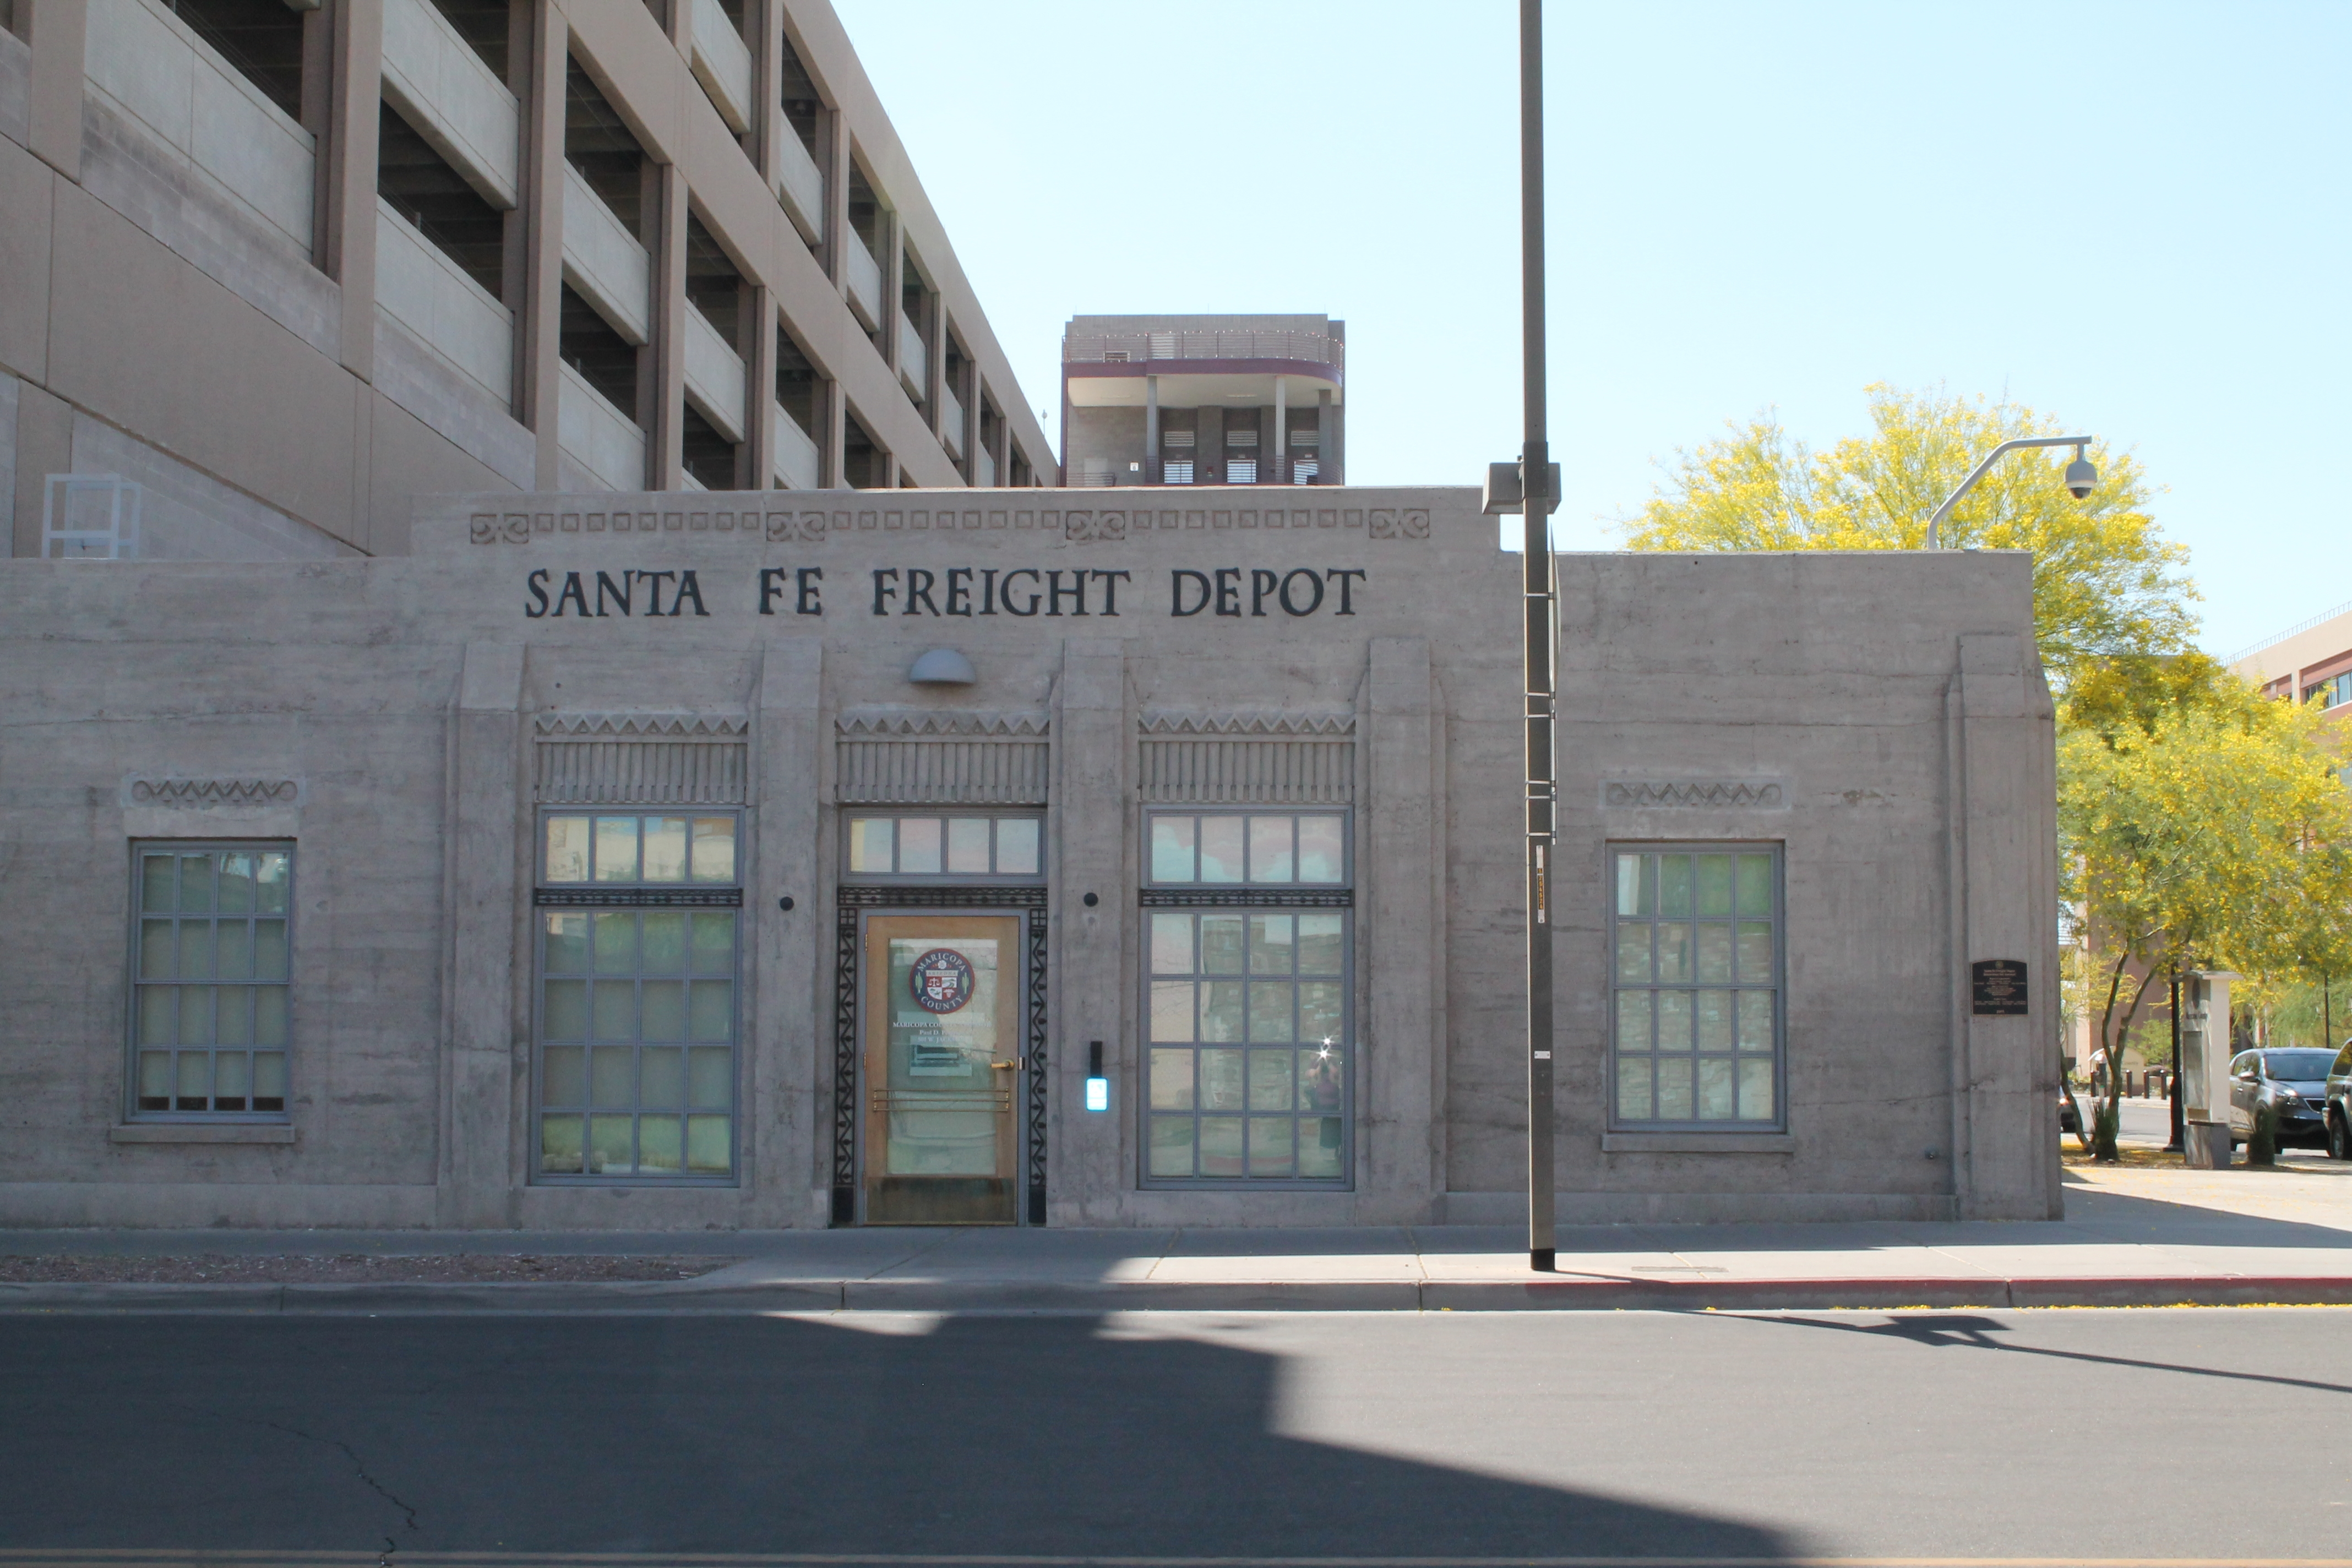 The former freight depot was built in 1929.